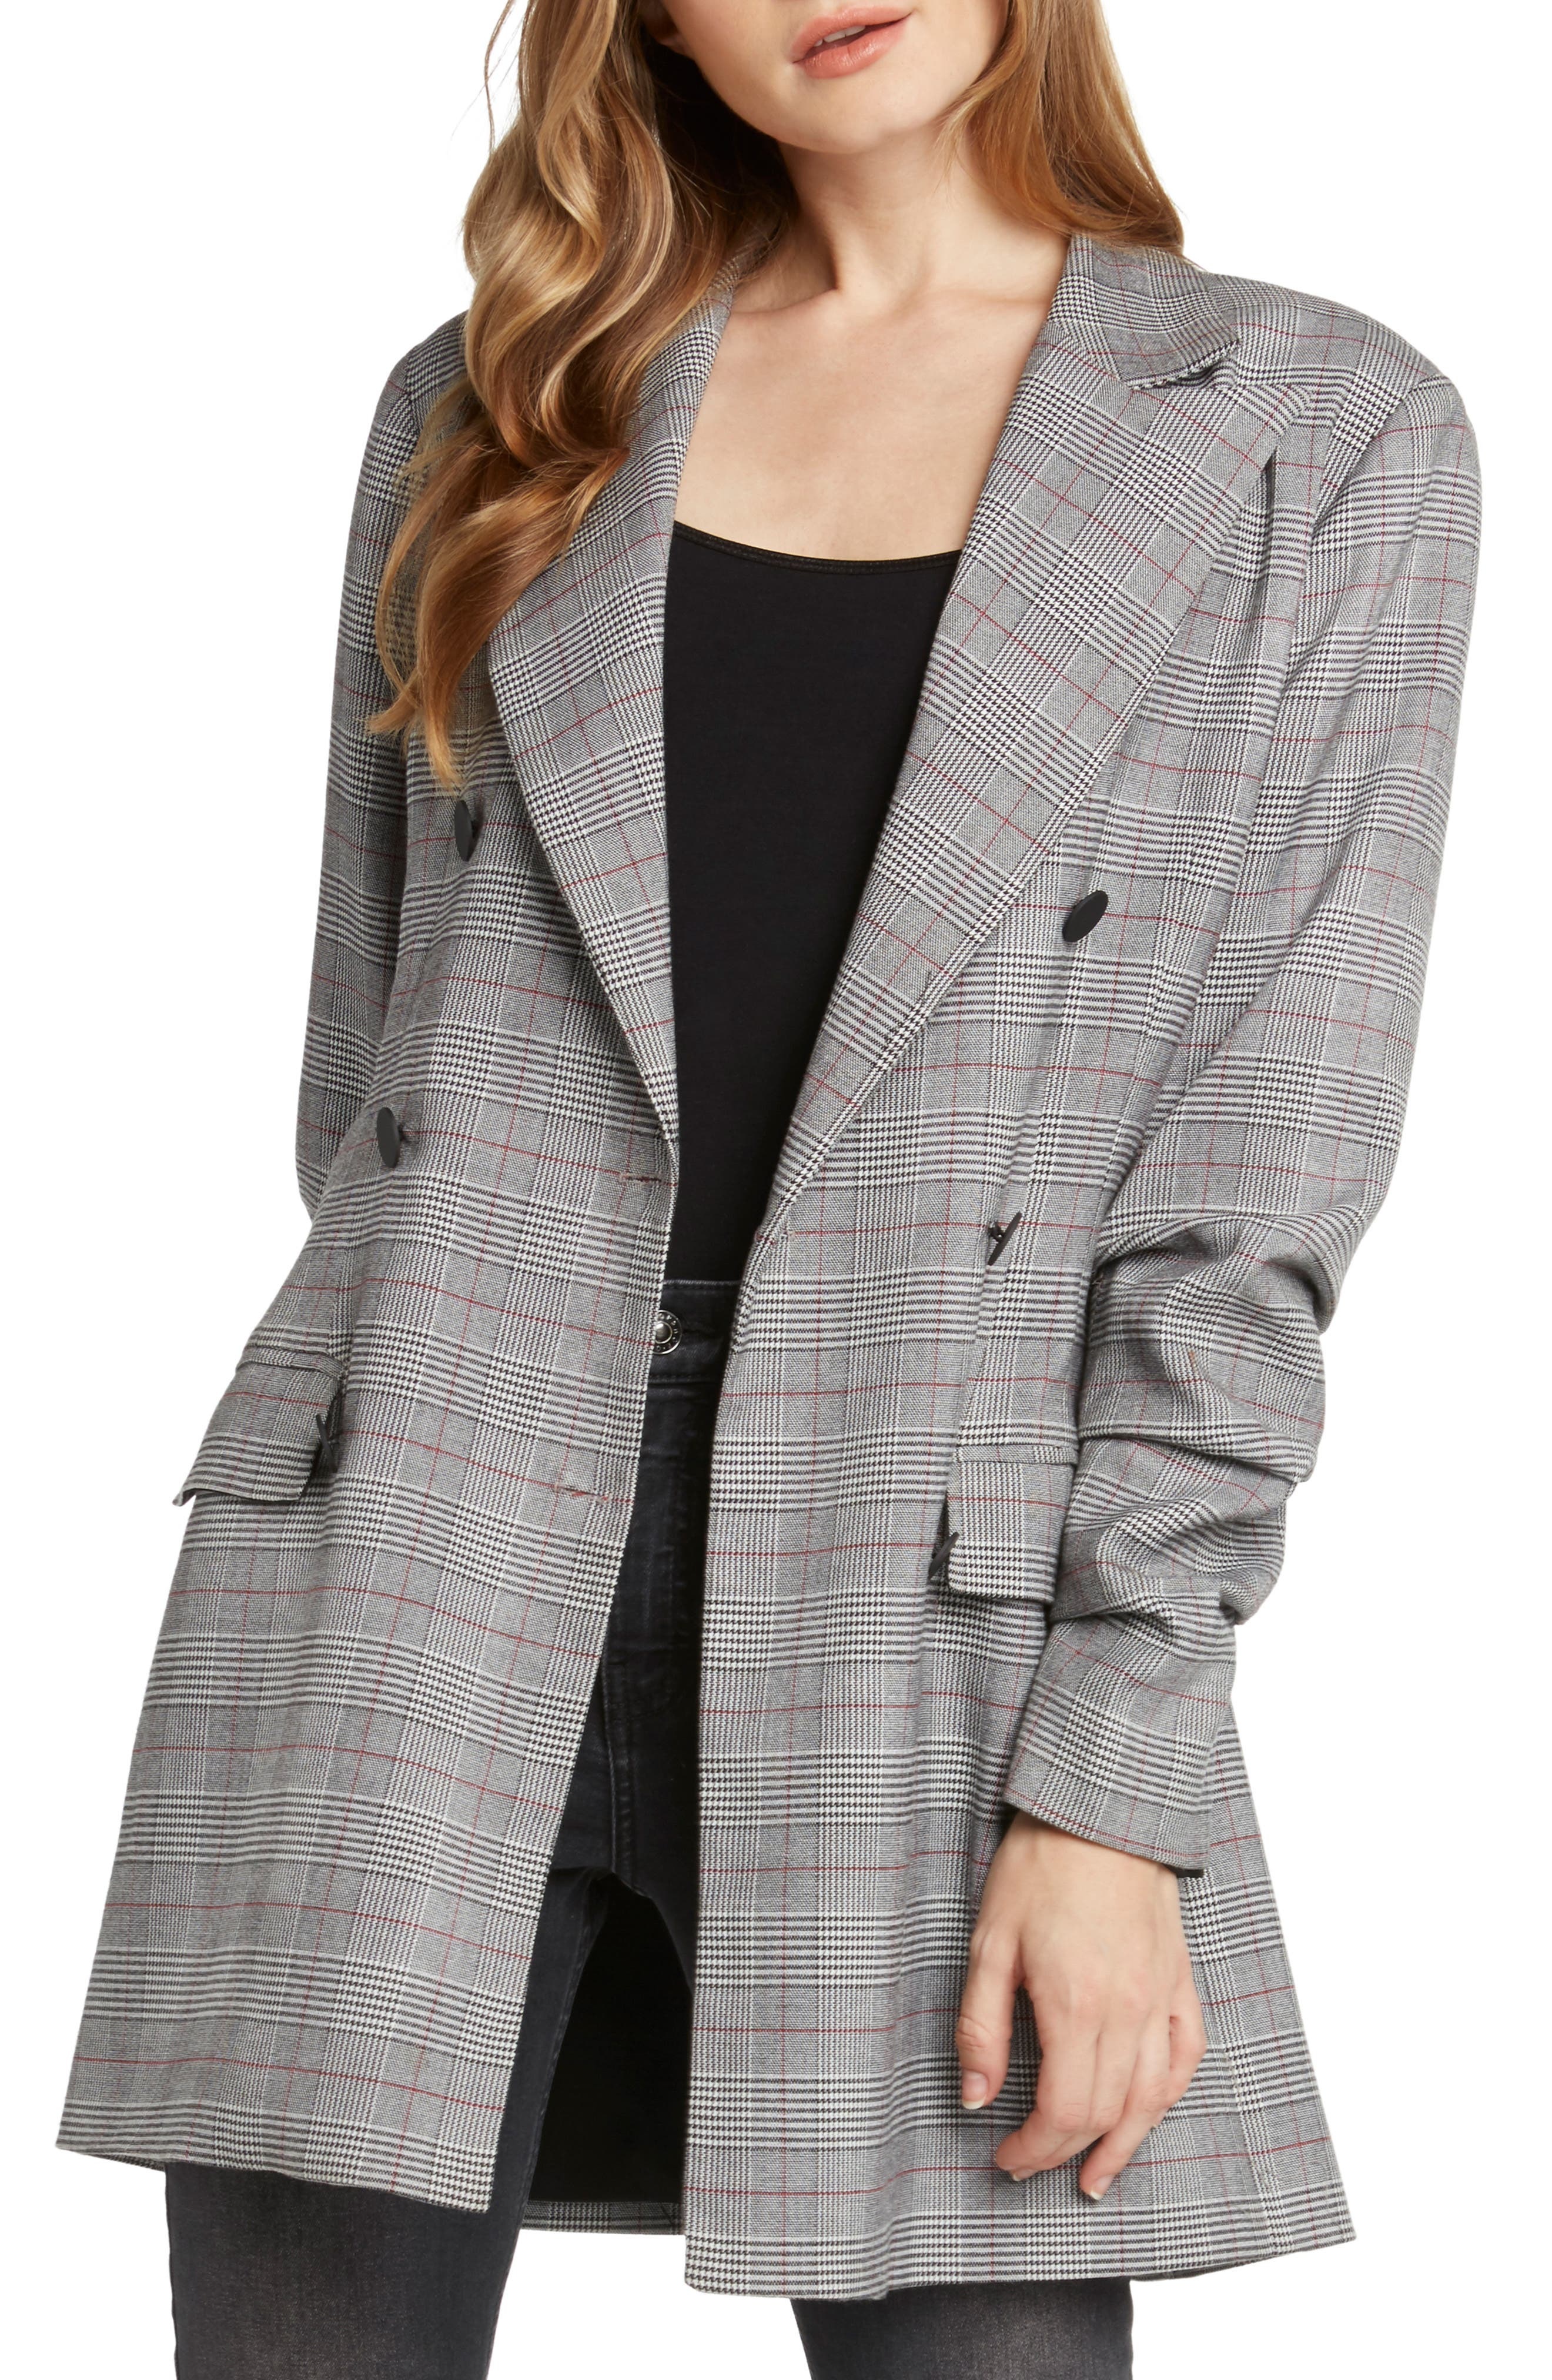 WILLOW & CLAY Double Breasted Plaid Jacket in Black